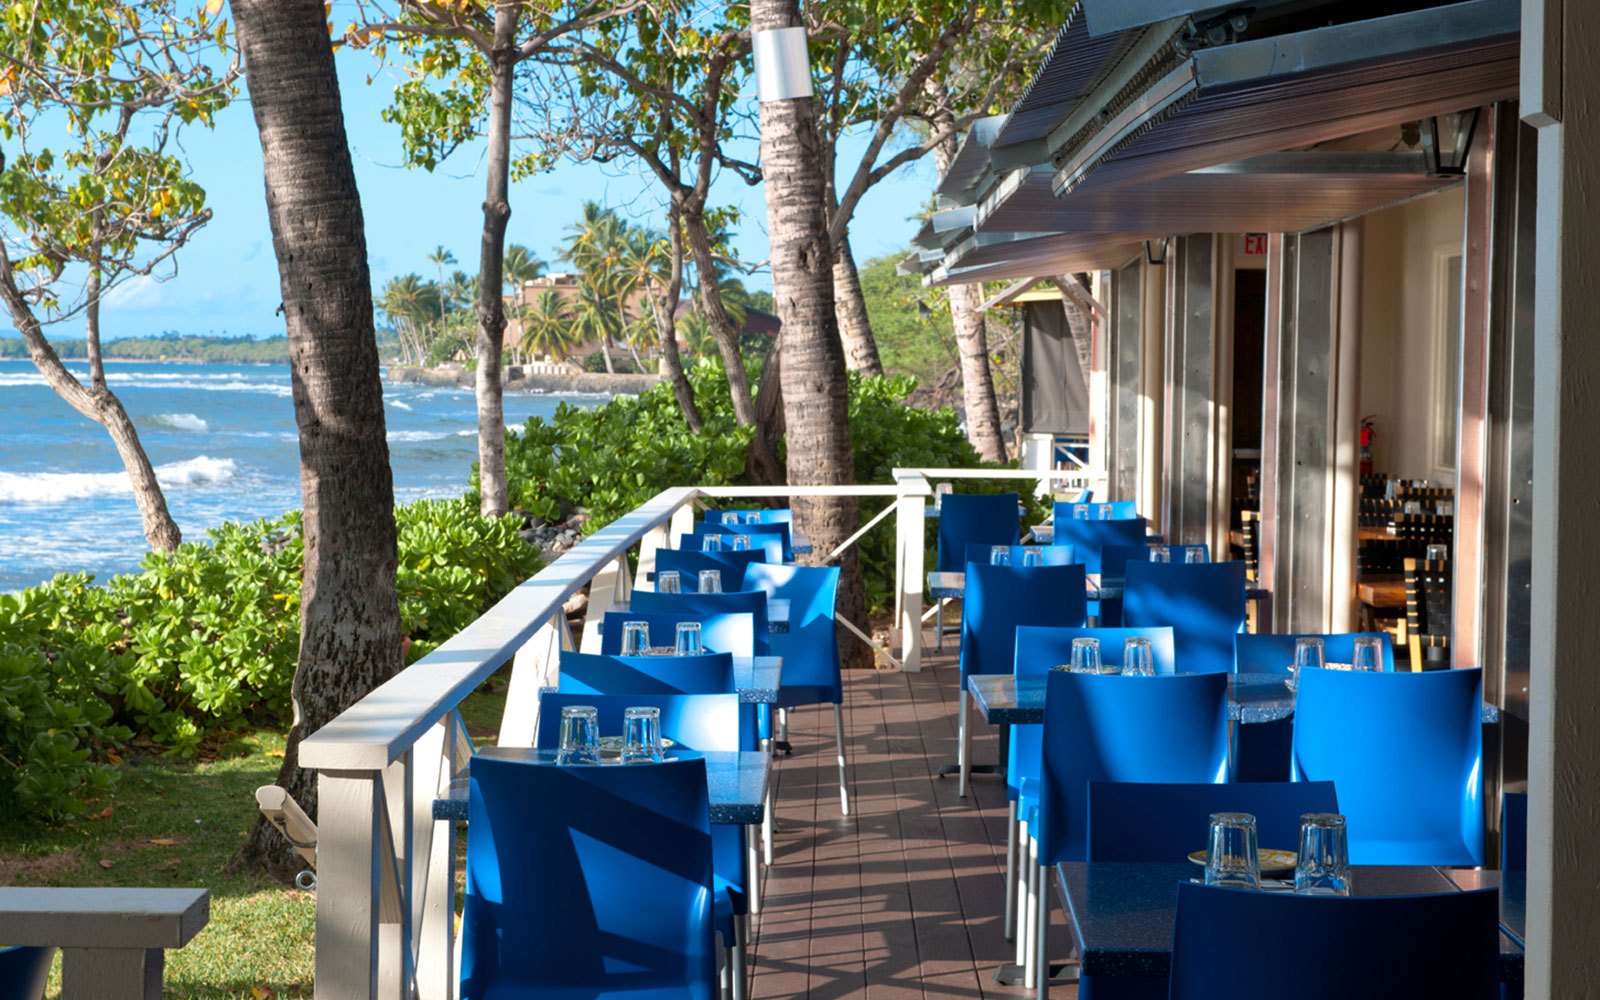 Ten of America's Best Outdoor Dining Spots, According to OpenTable: Frida's in Lahaina, Hawaii